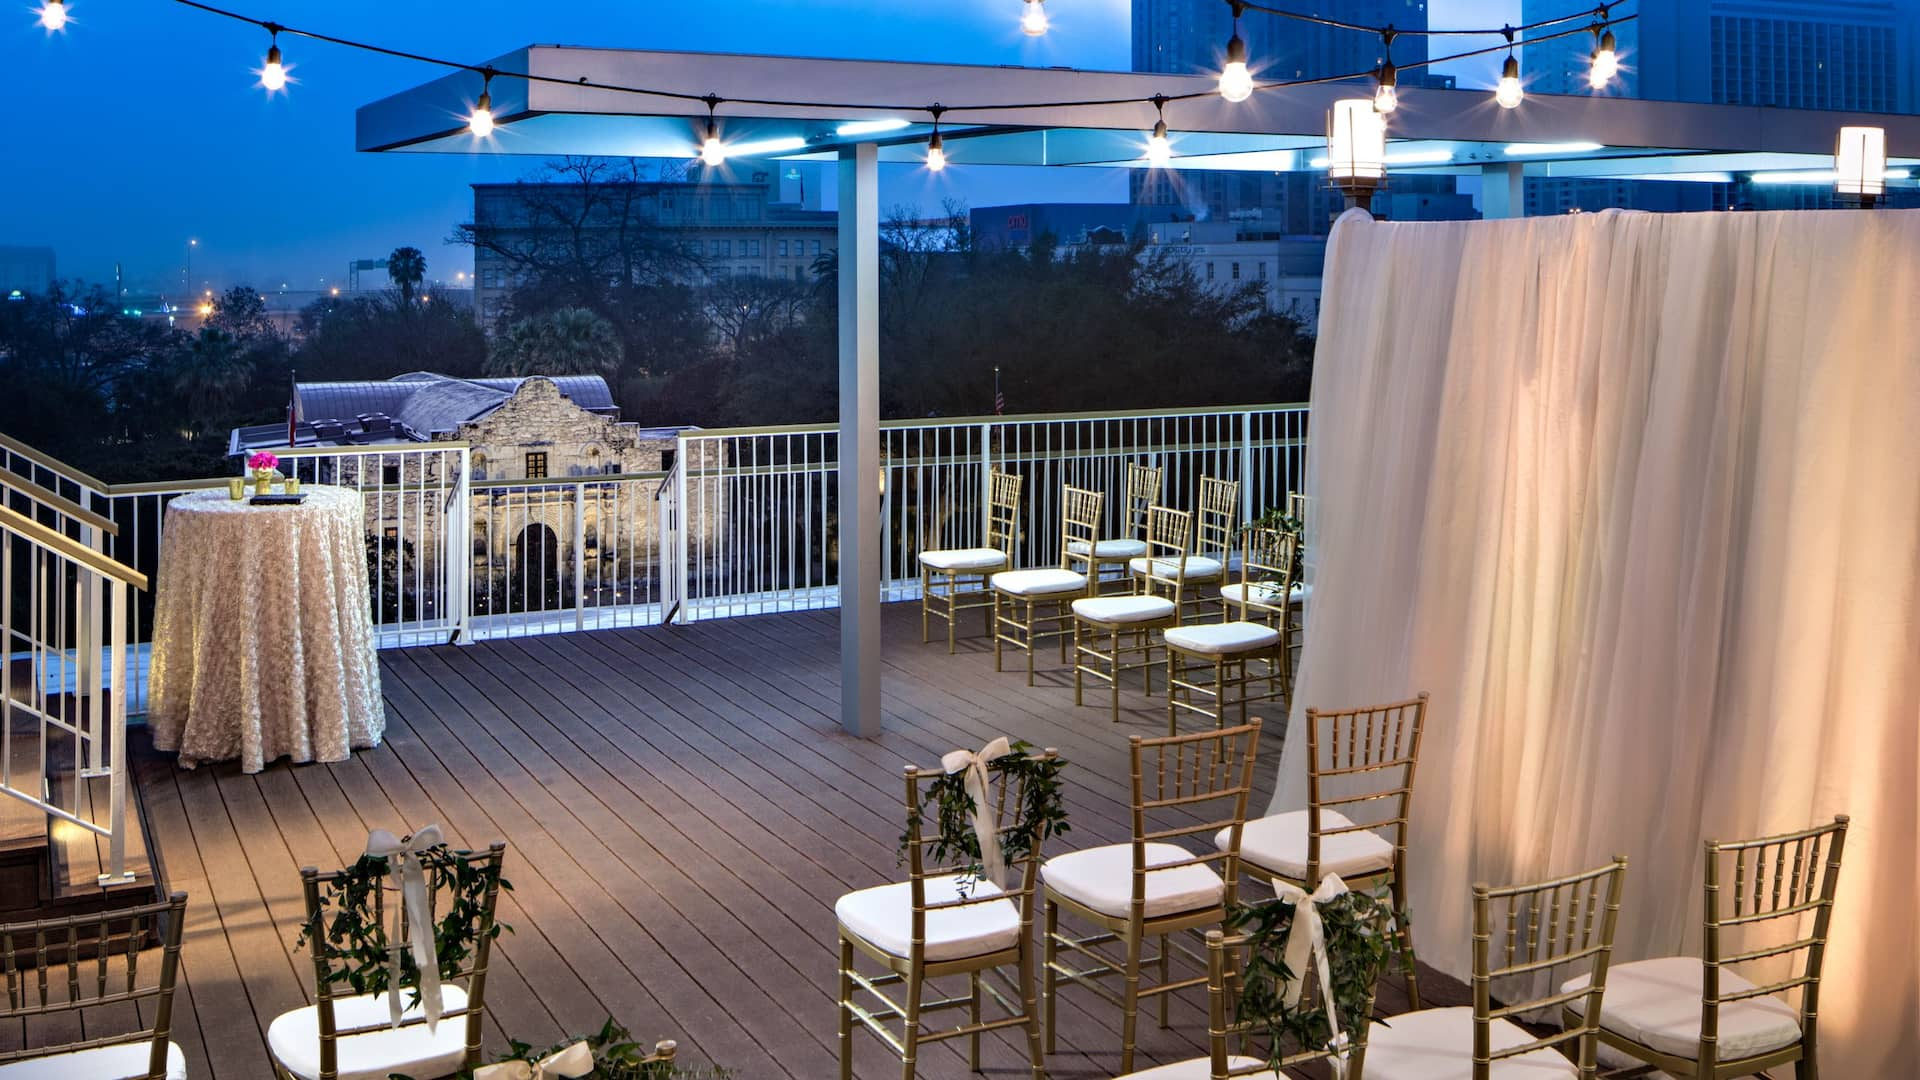 Small balcony wedding venue overlooking the Alamo